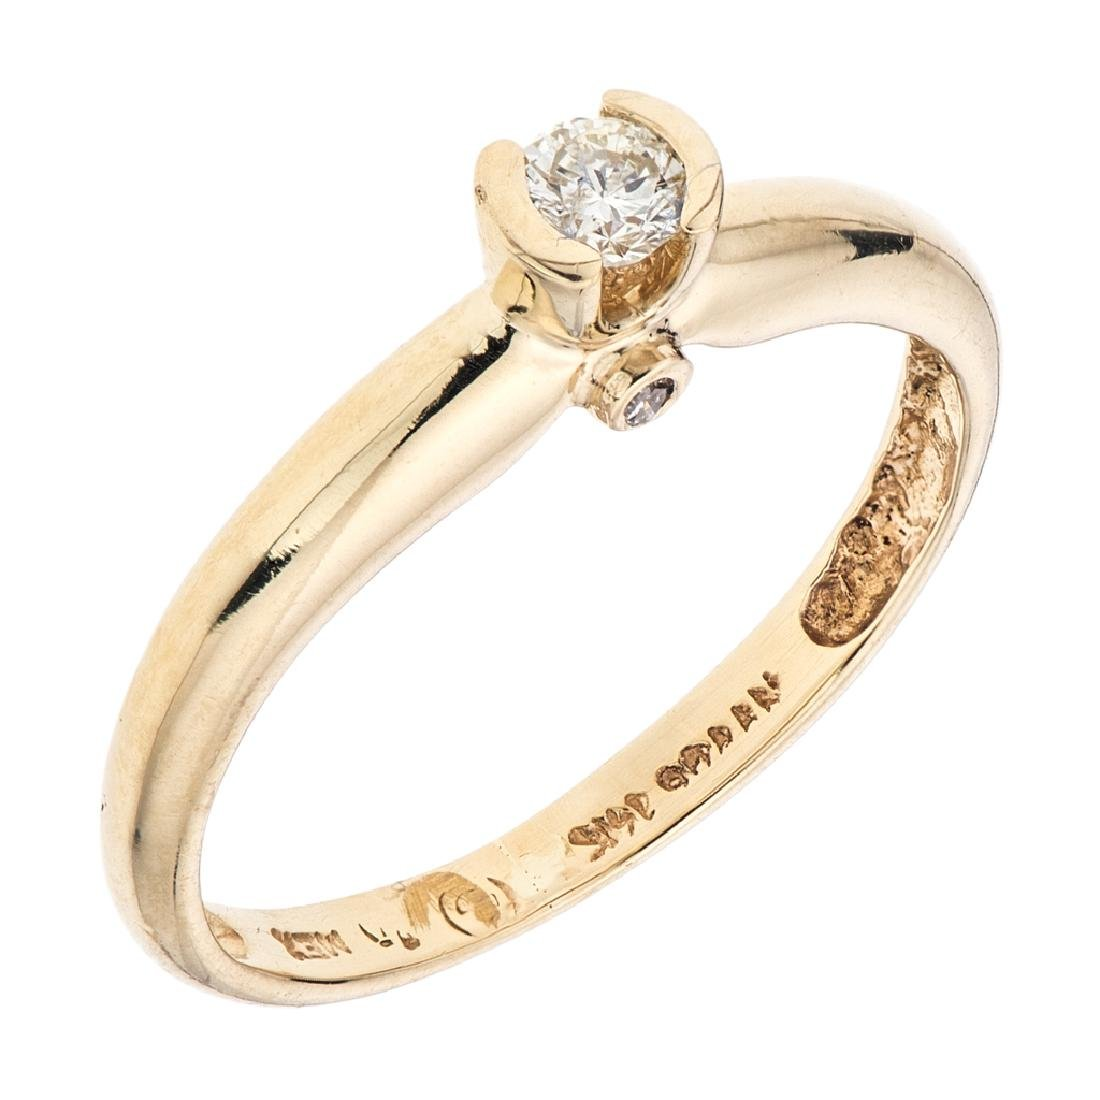 A 14K yellow gold ring with 1 brilliant cut diamond